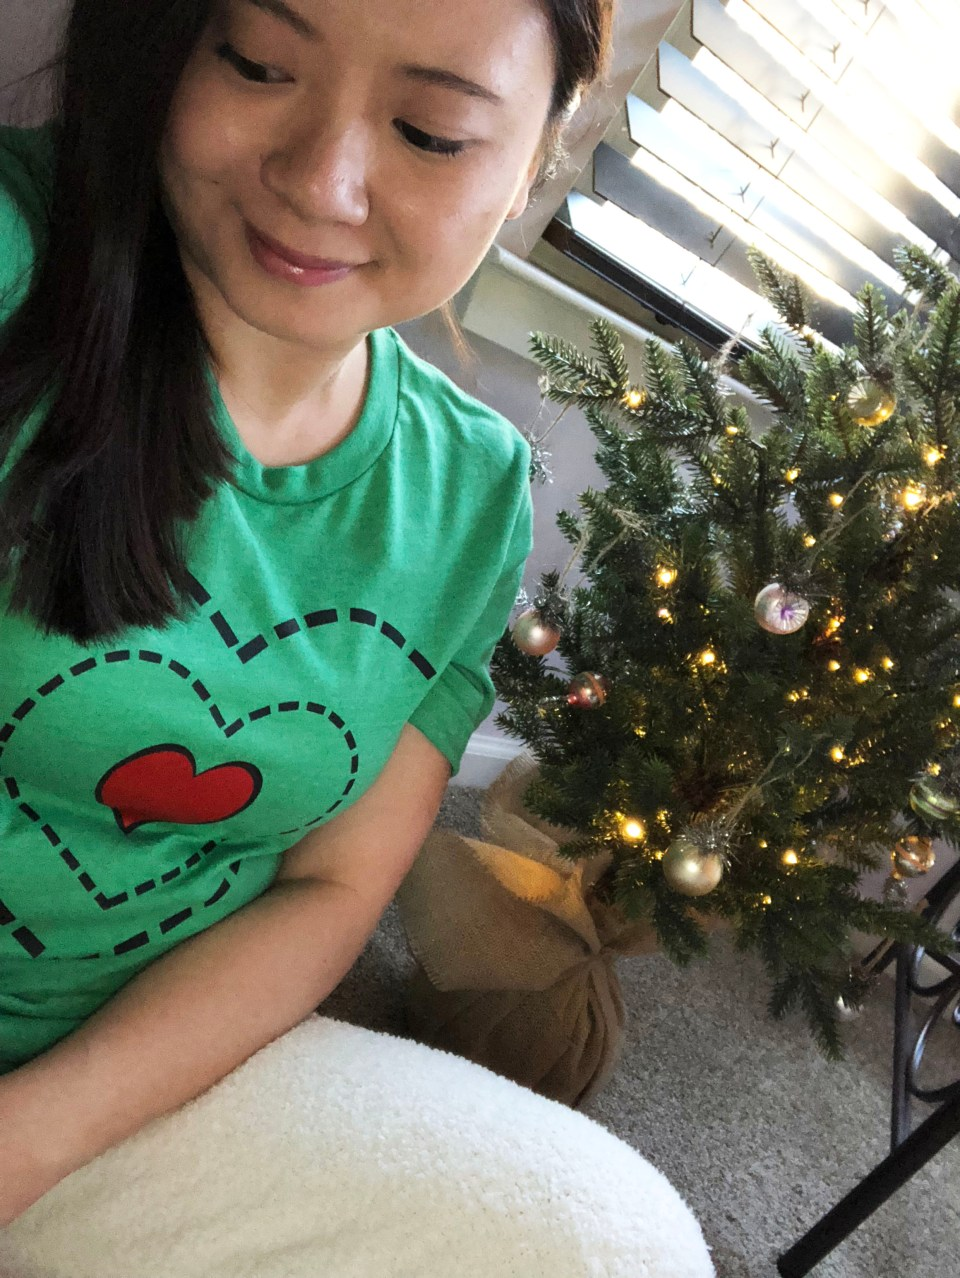 Grinch - Heart Two Sizes Too Small Tee + Teddy Leggings 3